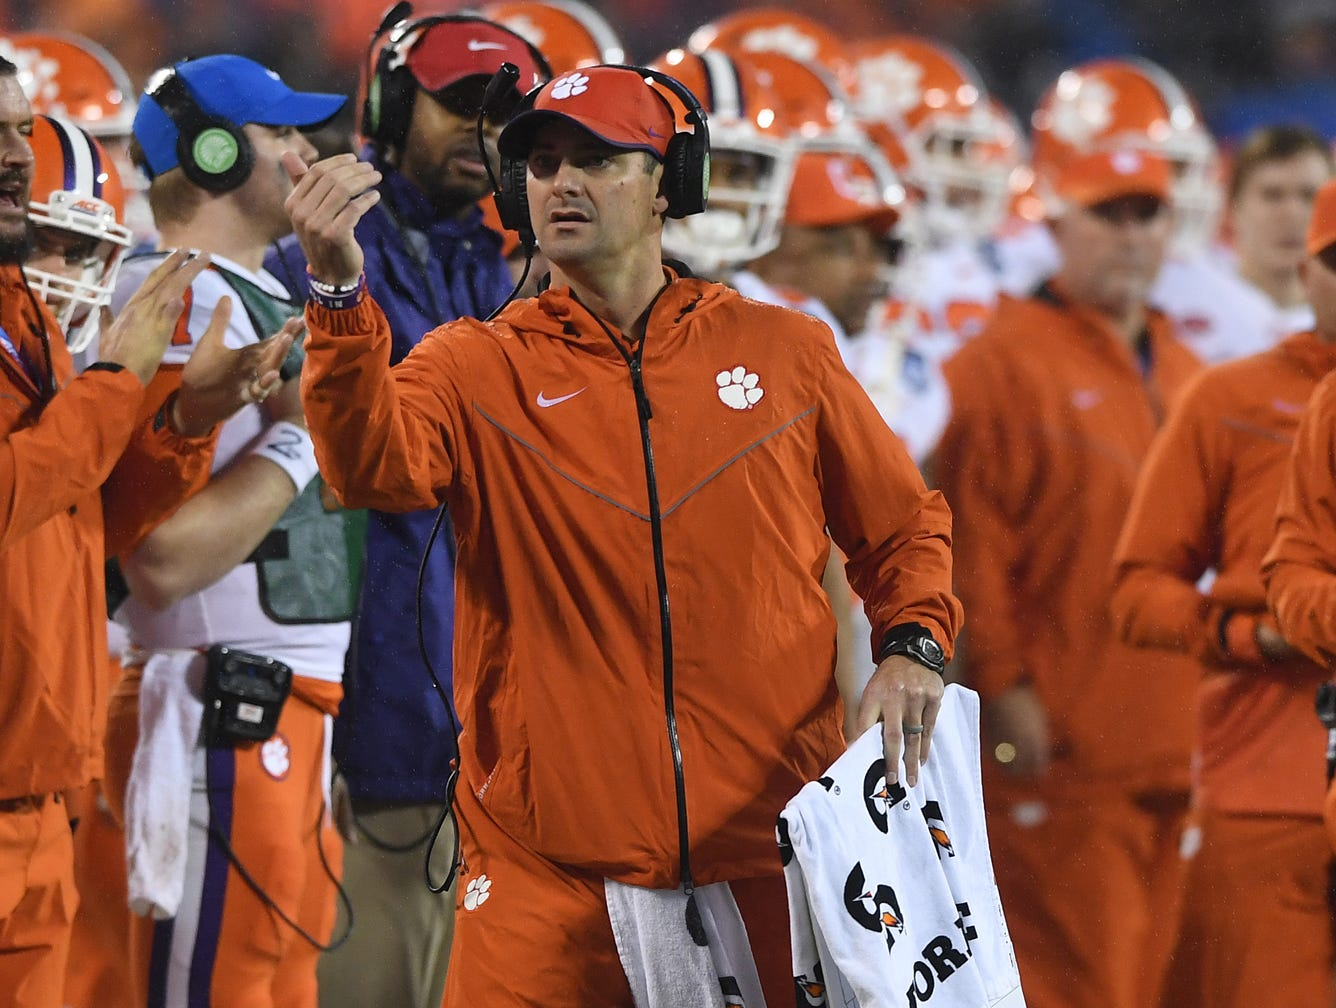 Clemson co-offensive coordinator Jeff Scott during the 1st quarter of the Dr. Pepper ACC Championship at Bank of America Stadium in Charlotte, N.C. Saturday, December 1, 2018.